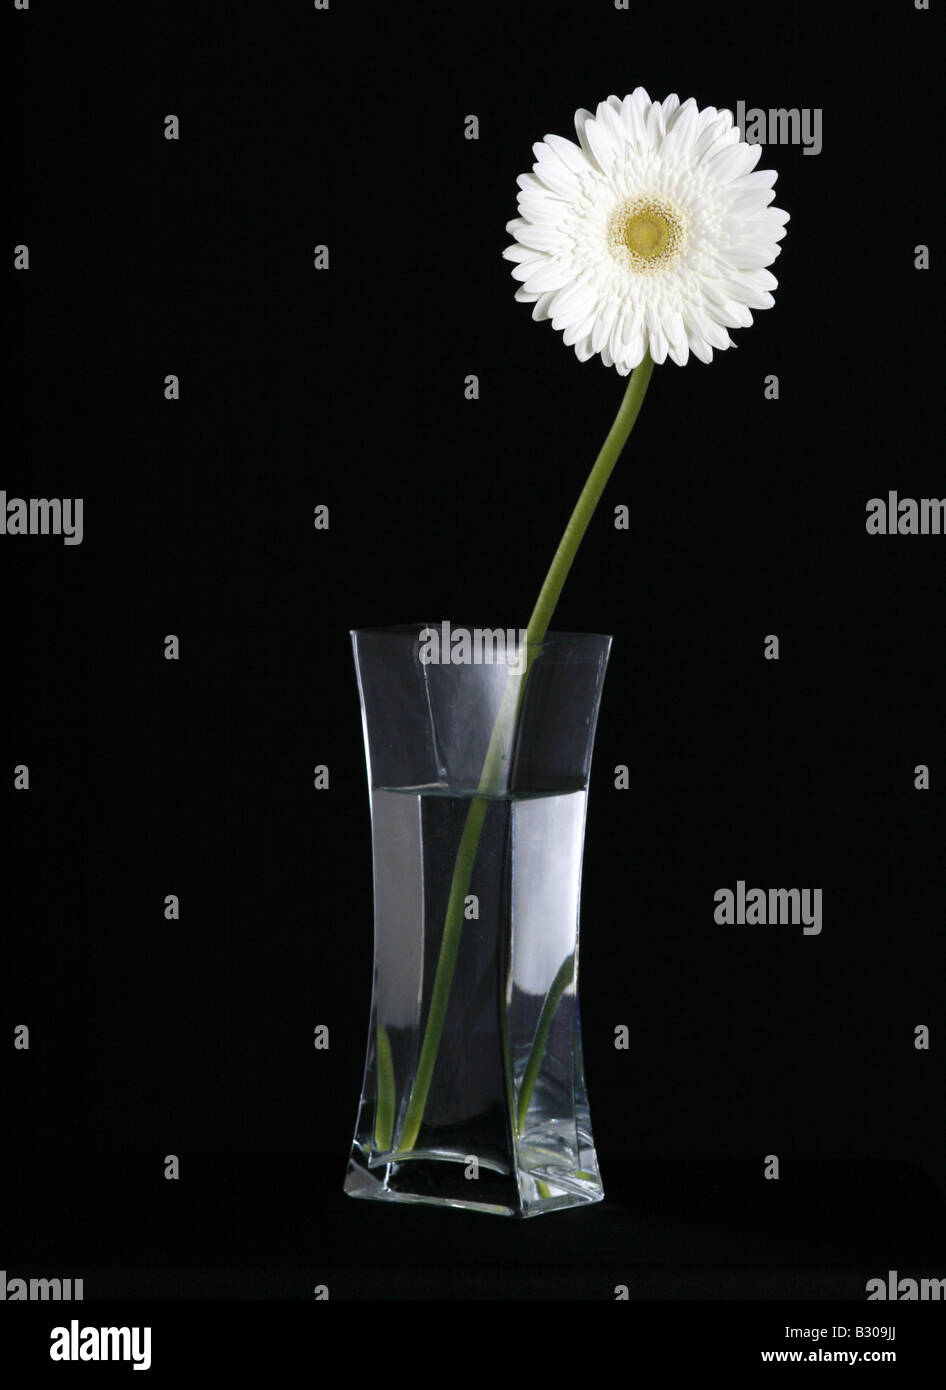 White gerbera flower in a glass vase against a black background white gerbera flower in a glass vase against a black background mightylinksfo